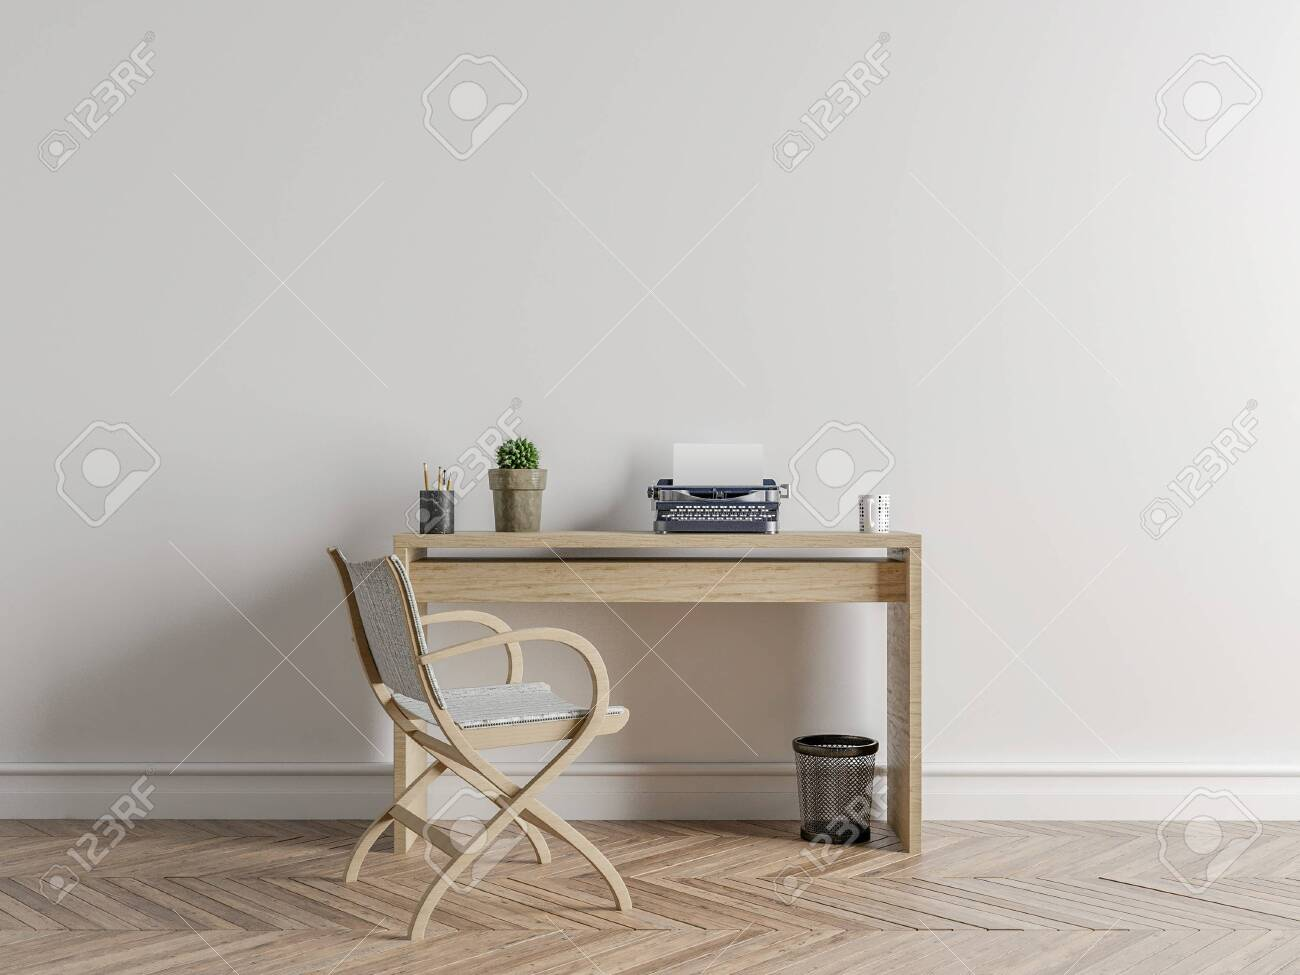 Wall Bed And Chair Modern Mid Century Bedside Table And White Stock Photo Picture And Royalty Free Image Image 142847994